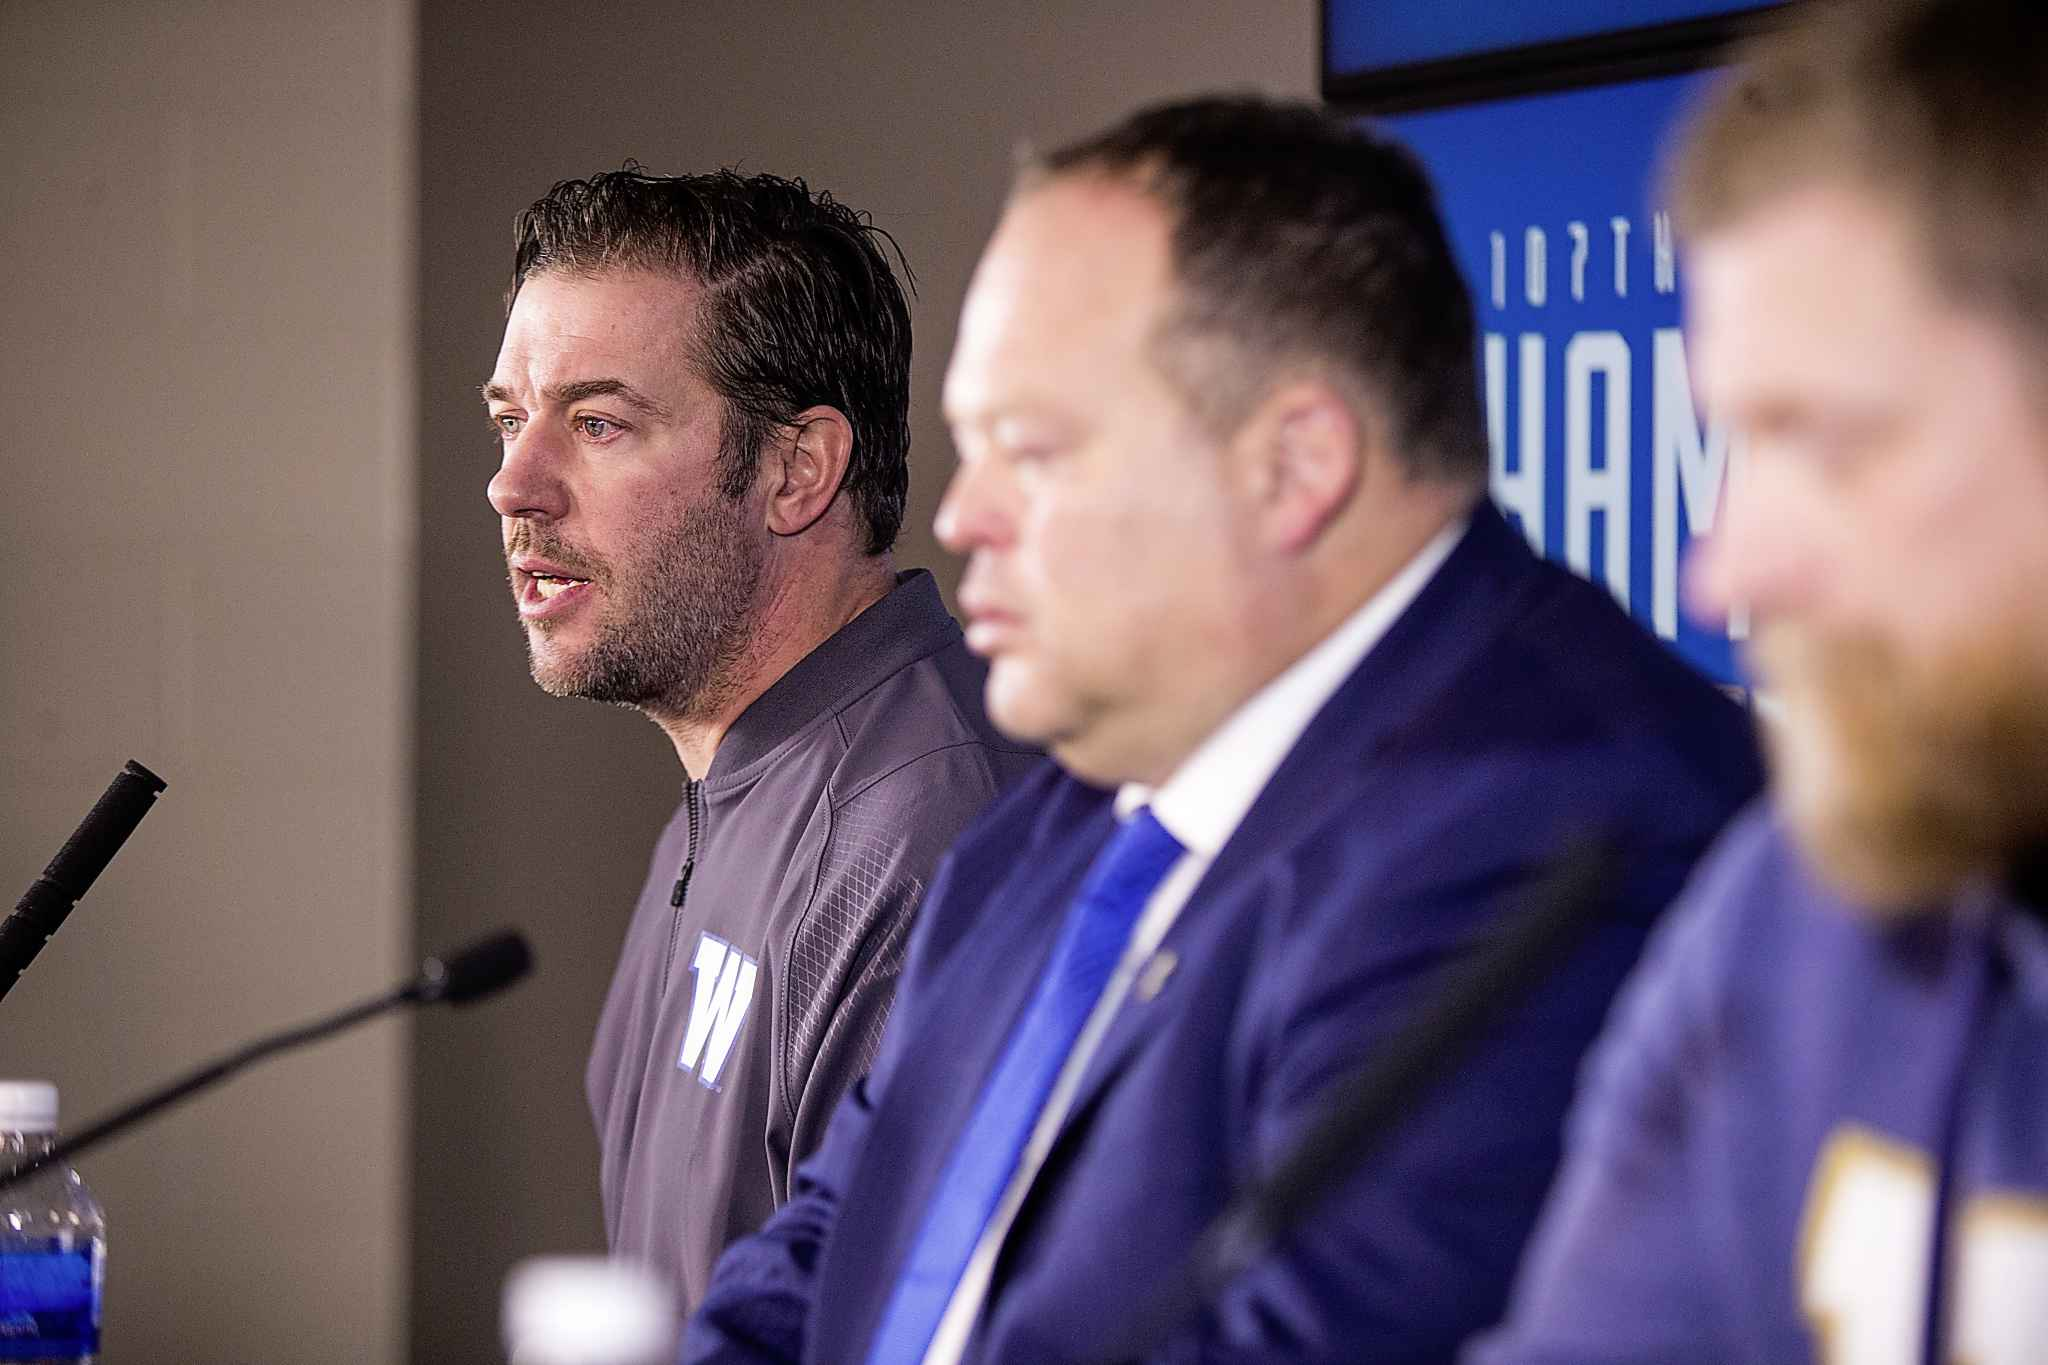 Winnipeg Blue Bombers GM Kyle Walters (left) will have to figure out a way to keep the majority of the team intact, while also filling several major holes left by players who have moved on to the NFL. (Mikaela MacKenzie / Free Press files)